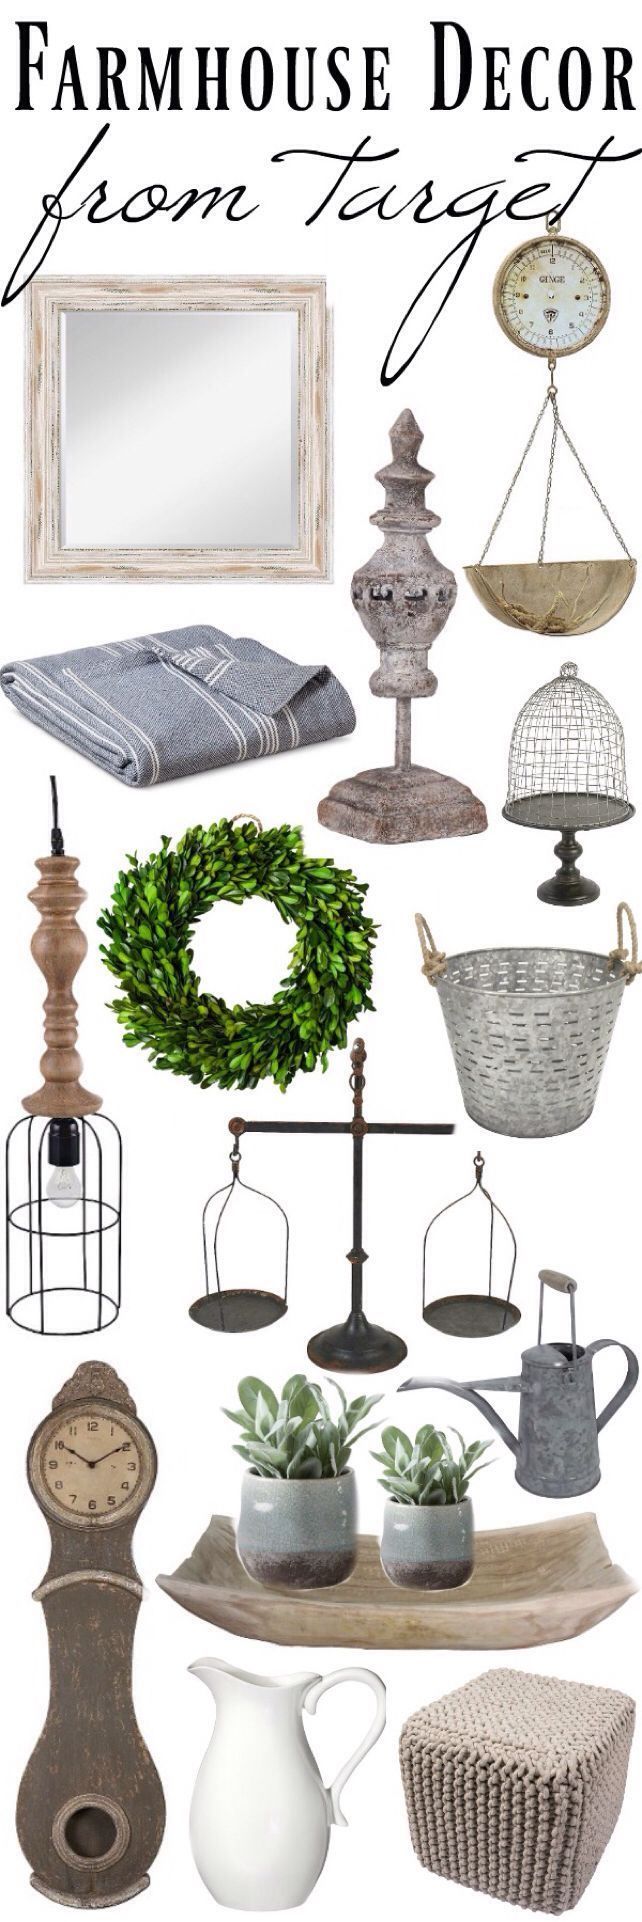 liz marie blog The Best Farmhouse Decor From Target http://www.lizmarieblog.com/2016/08/the-best-farmhouse-decor-from-target/ via bHome https://bhome.us